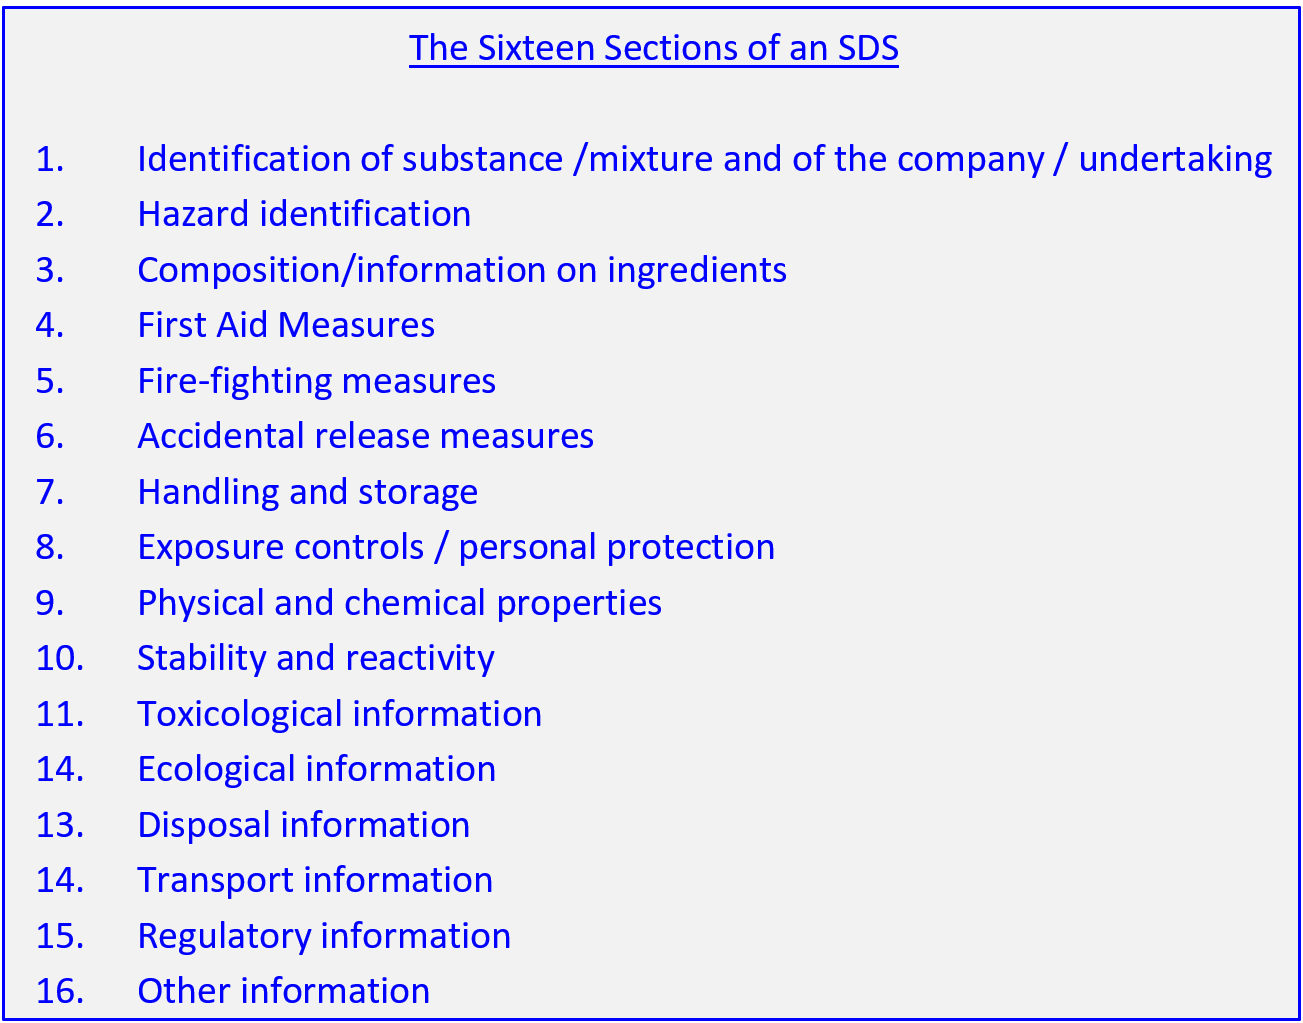 The Sixteen Sections of an SDS